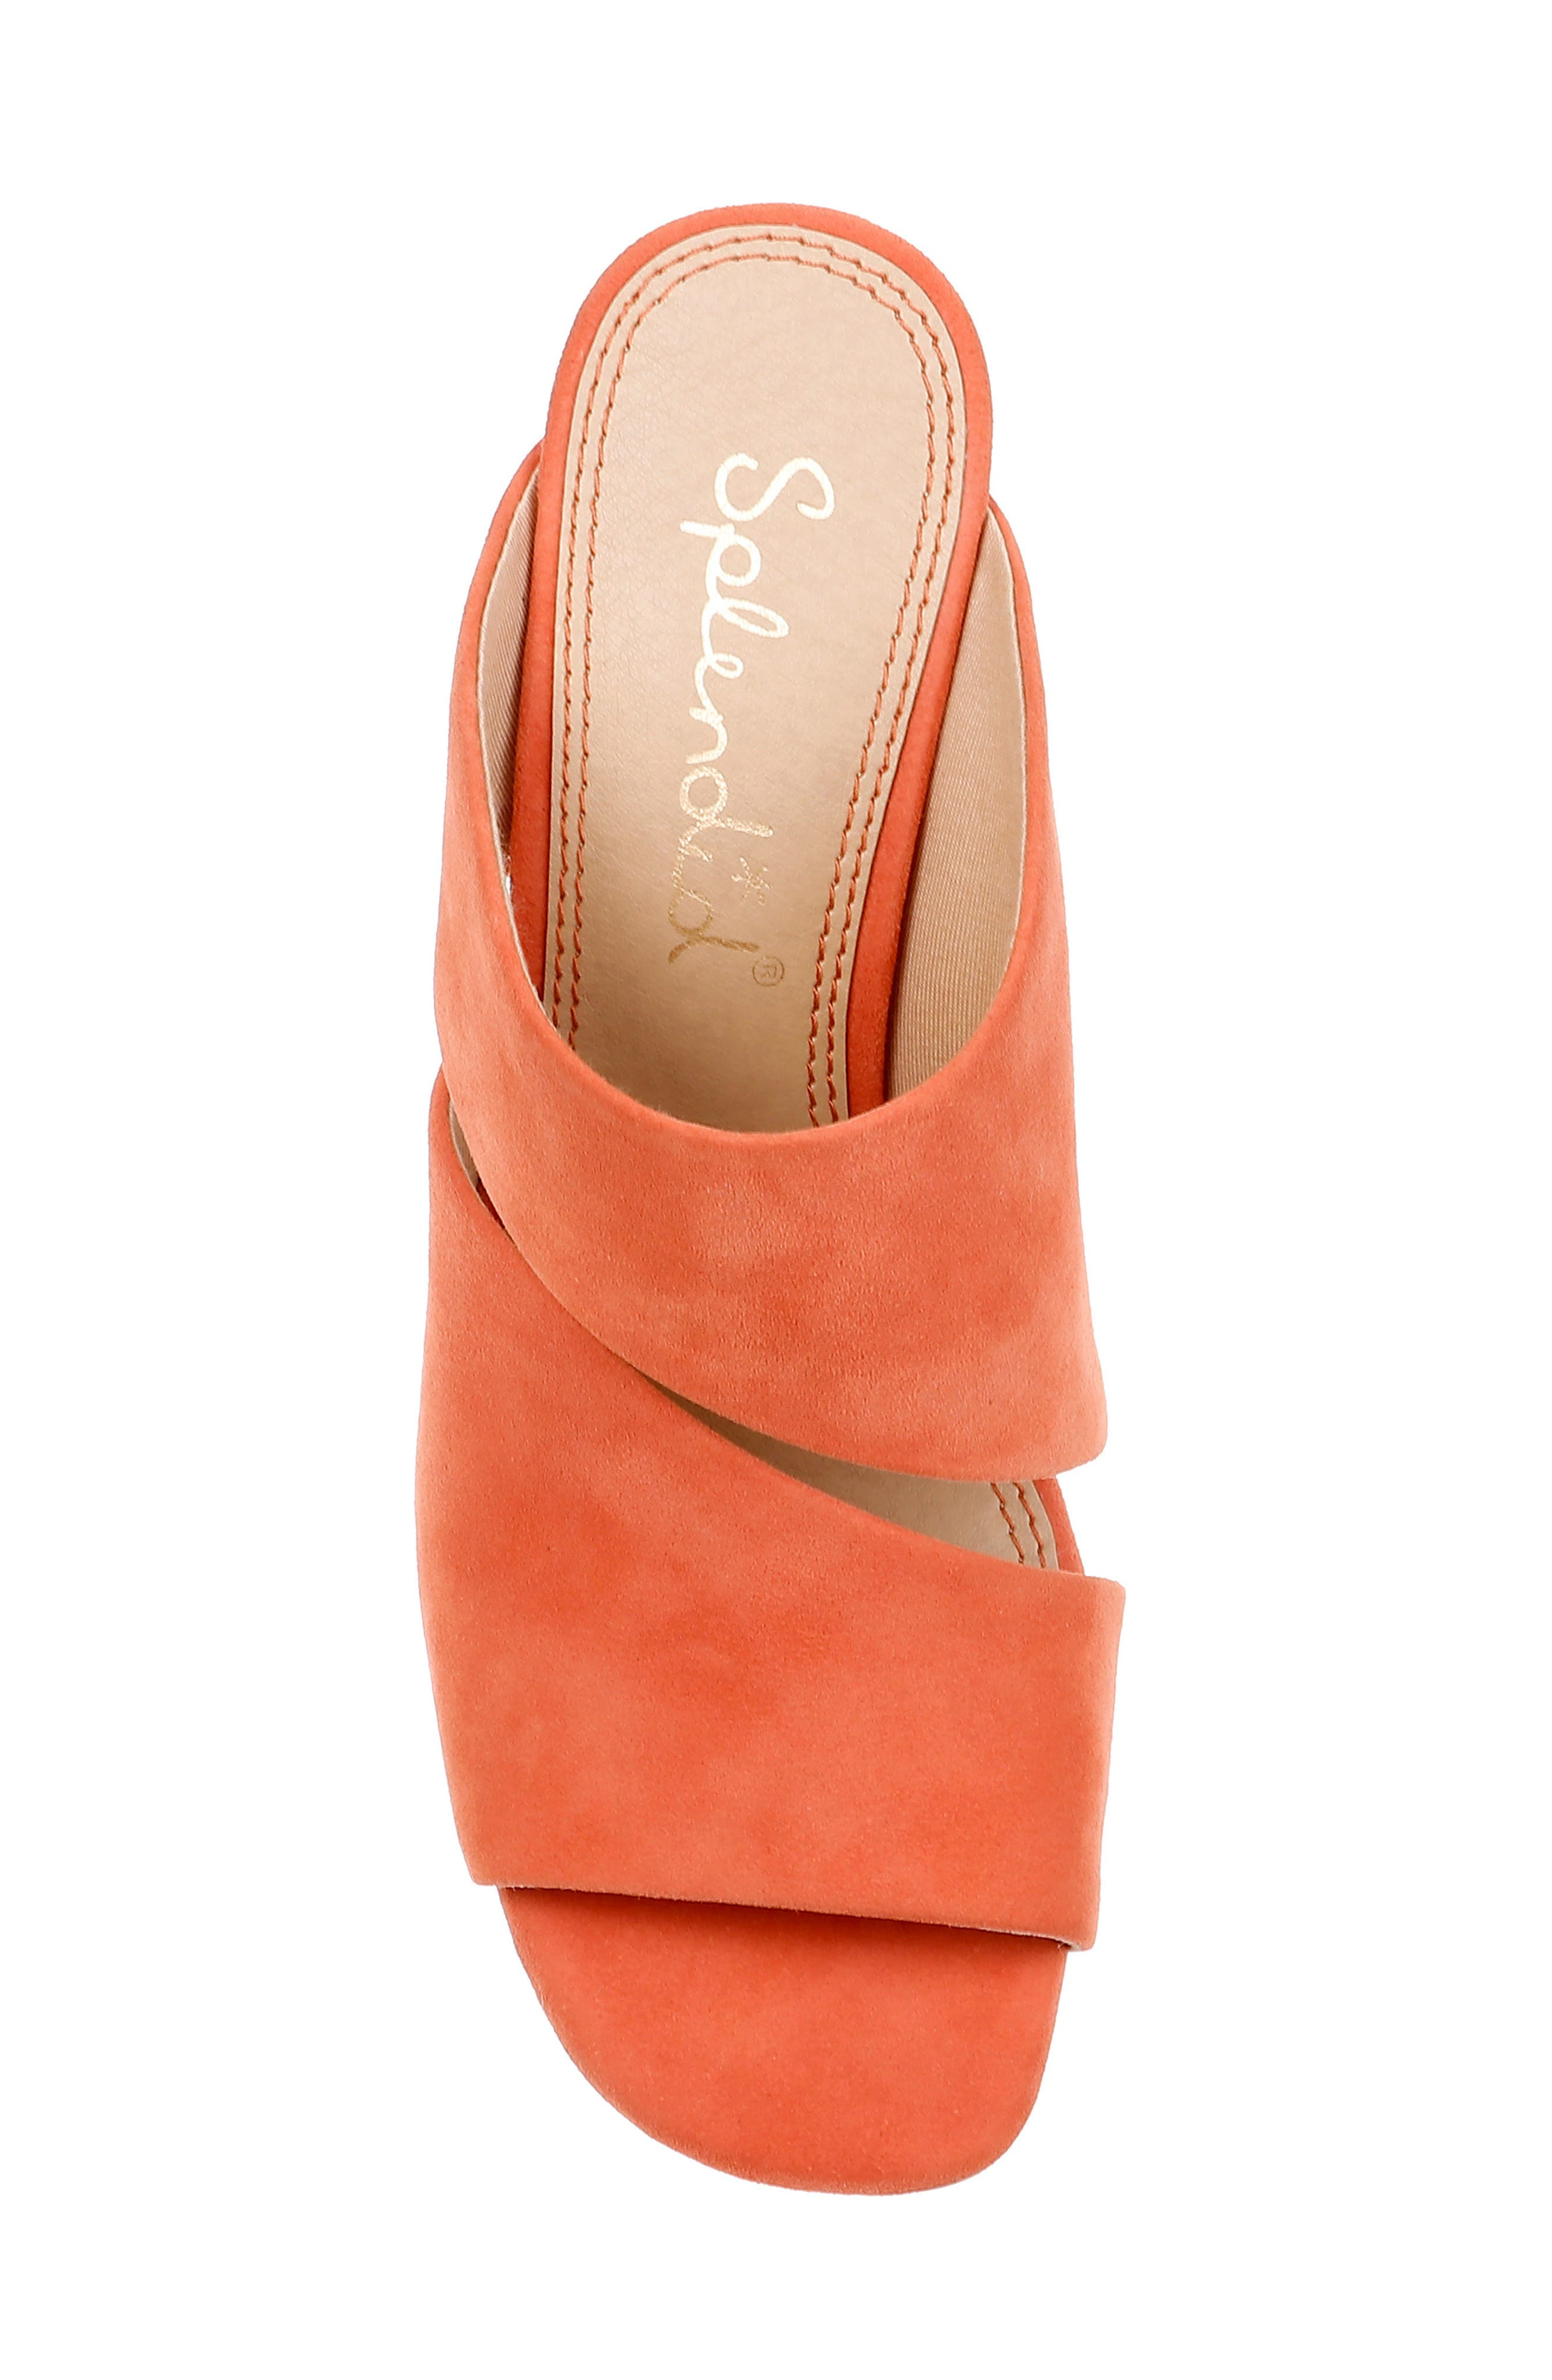 Serenade Sandal,                             Alternate thumbnail 5, color,                             ORANGE SUEDE